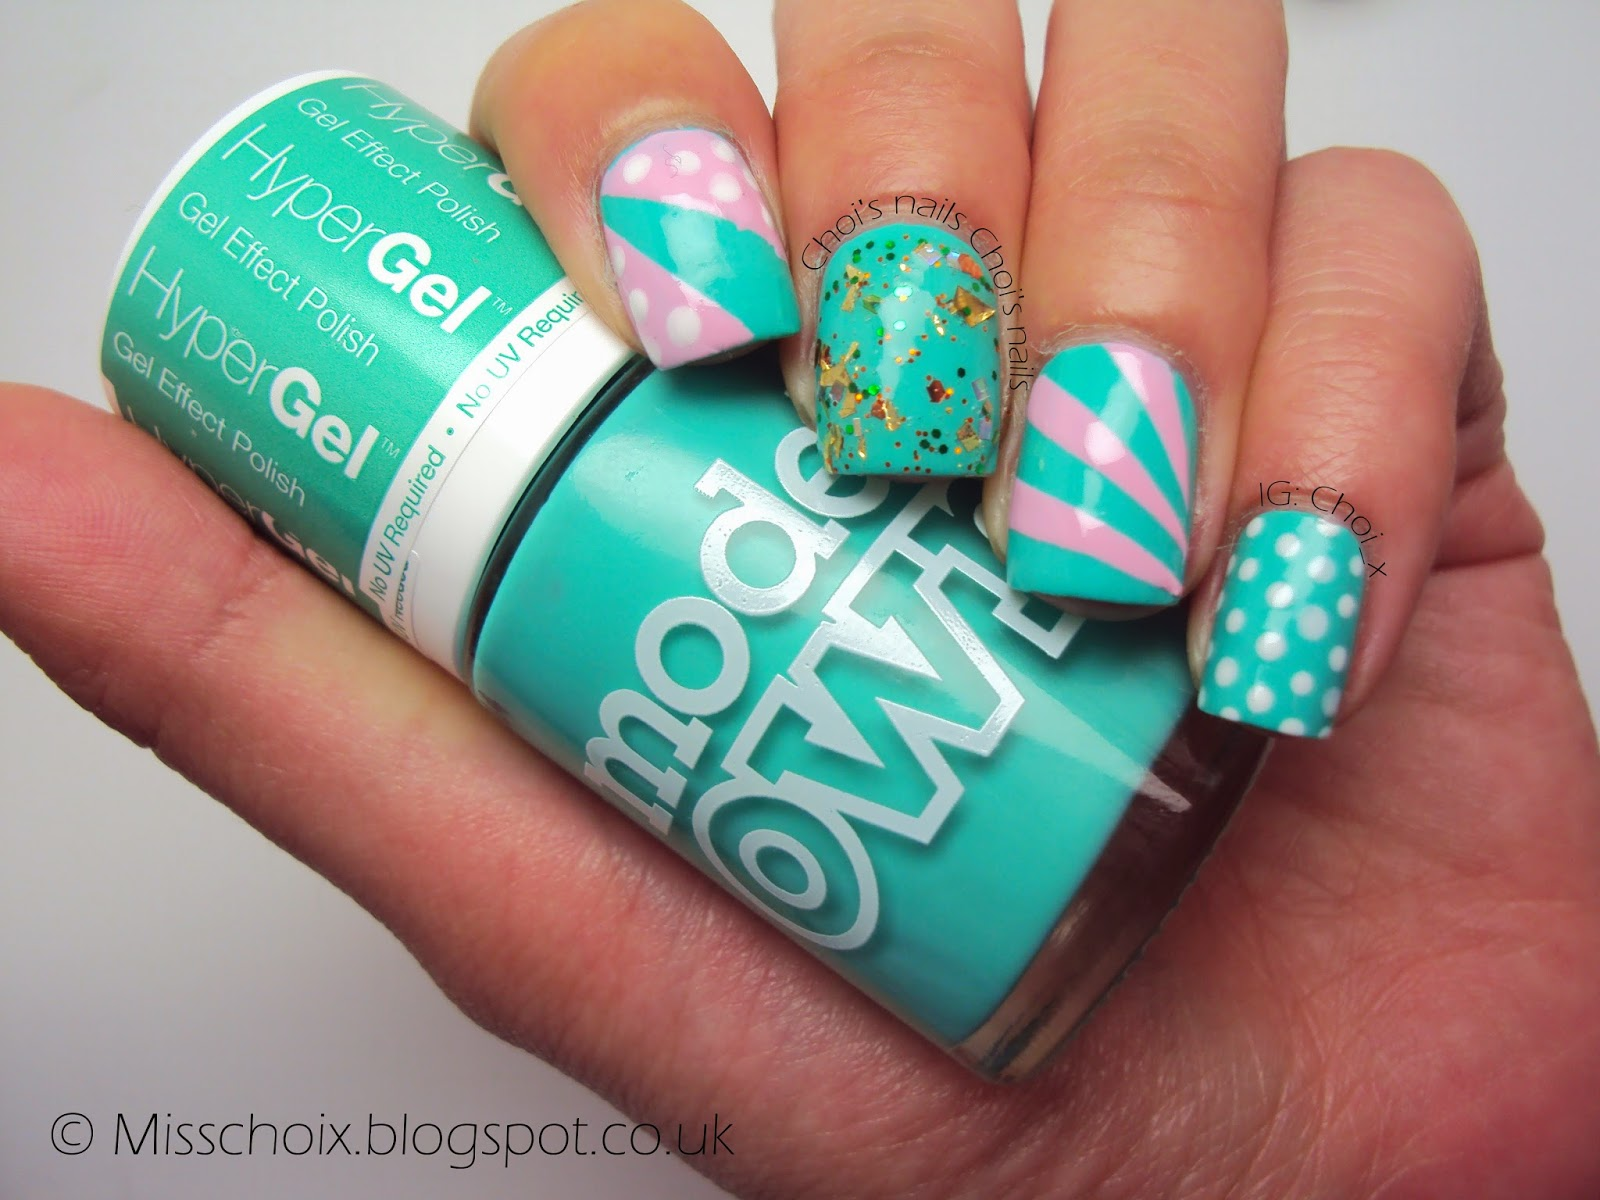 pink and turquoise retro nails with models own - choi's nails